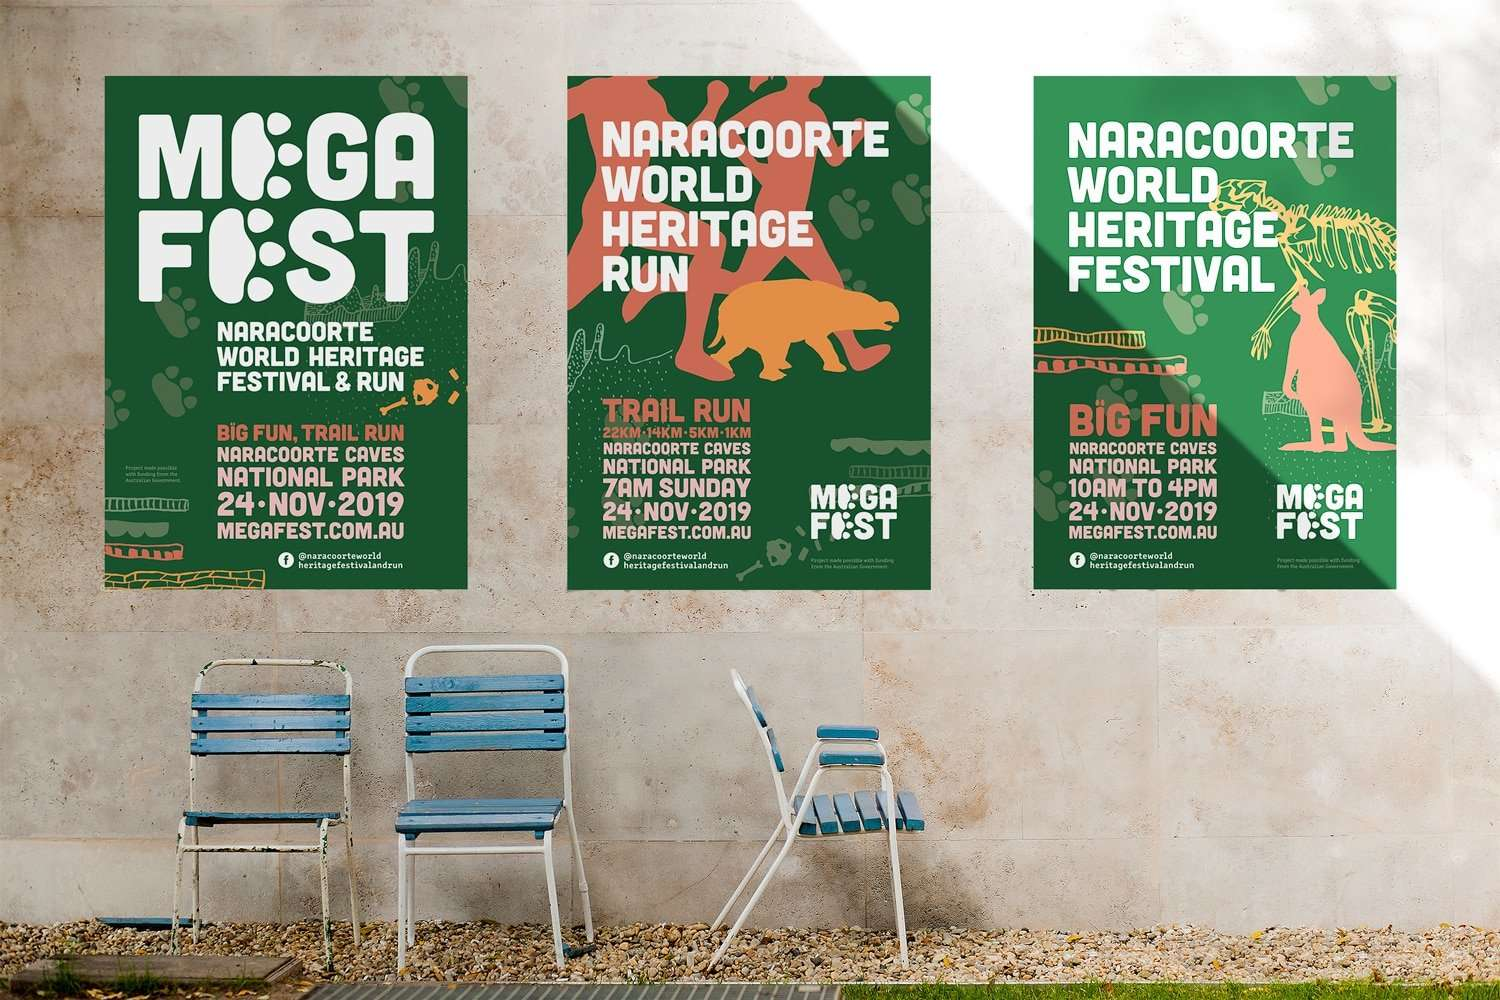 Mega Fest Naracoorte World Heritage Festival and Run poster design by Flux Visual Communication